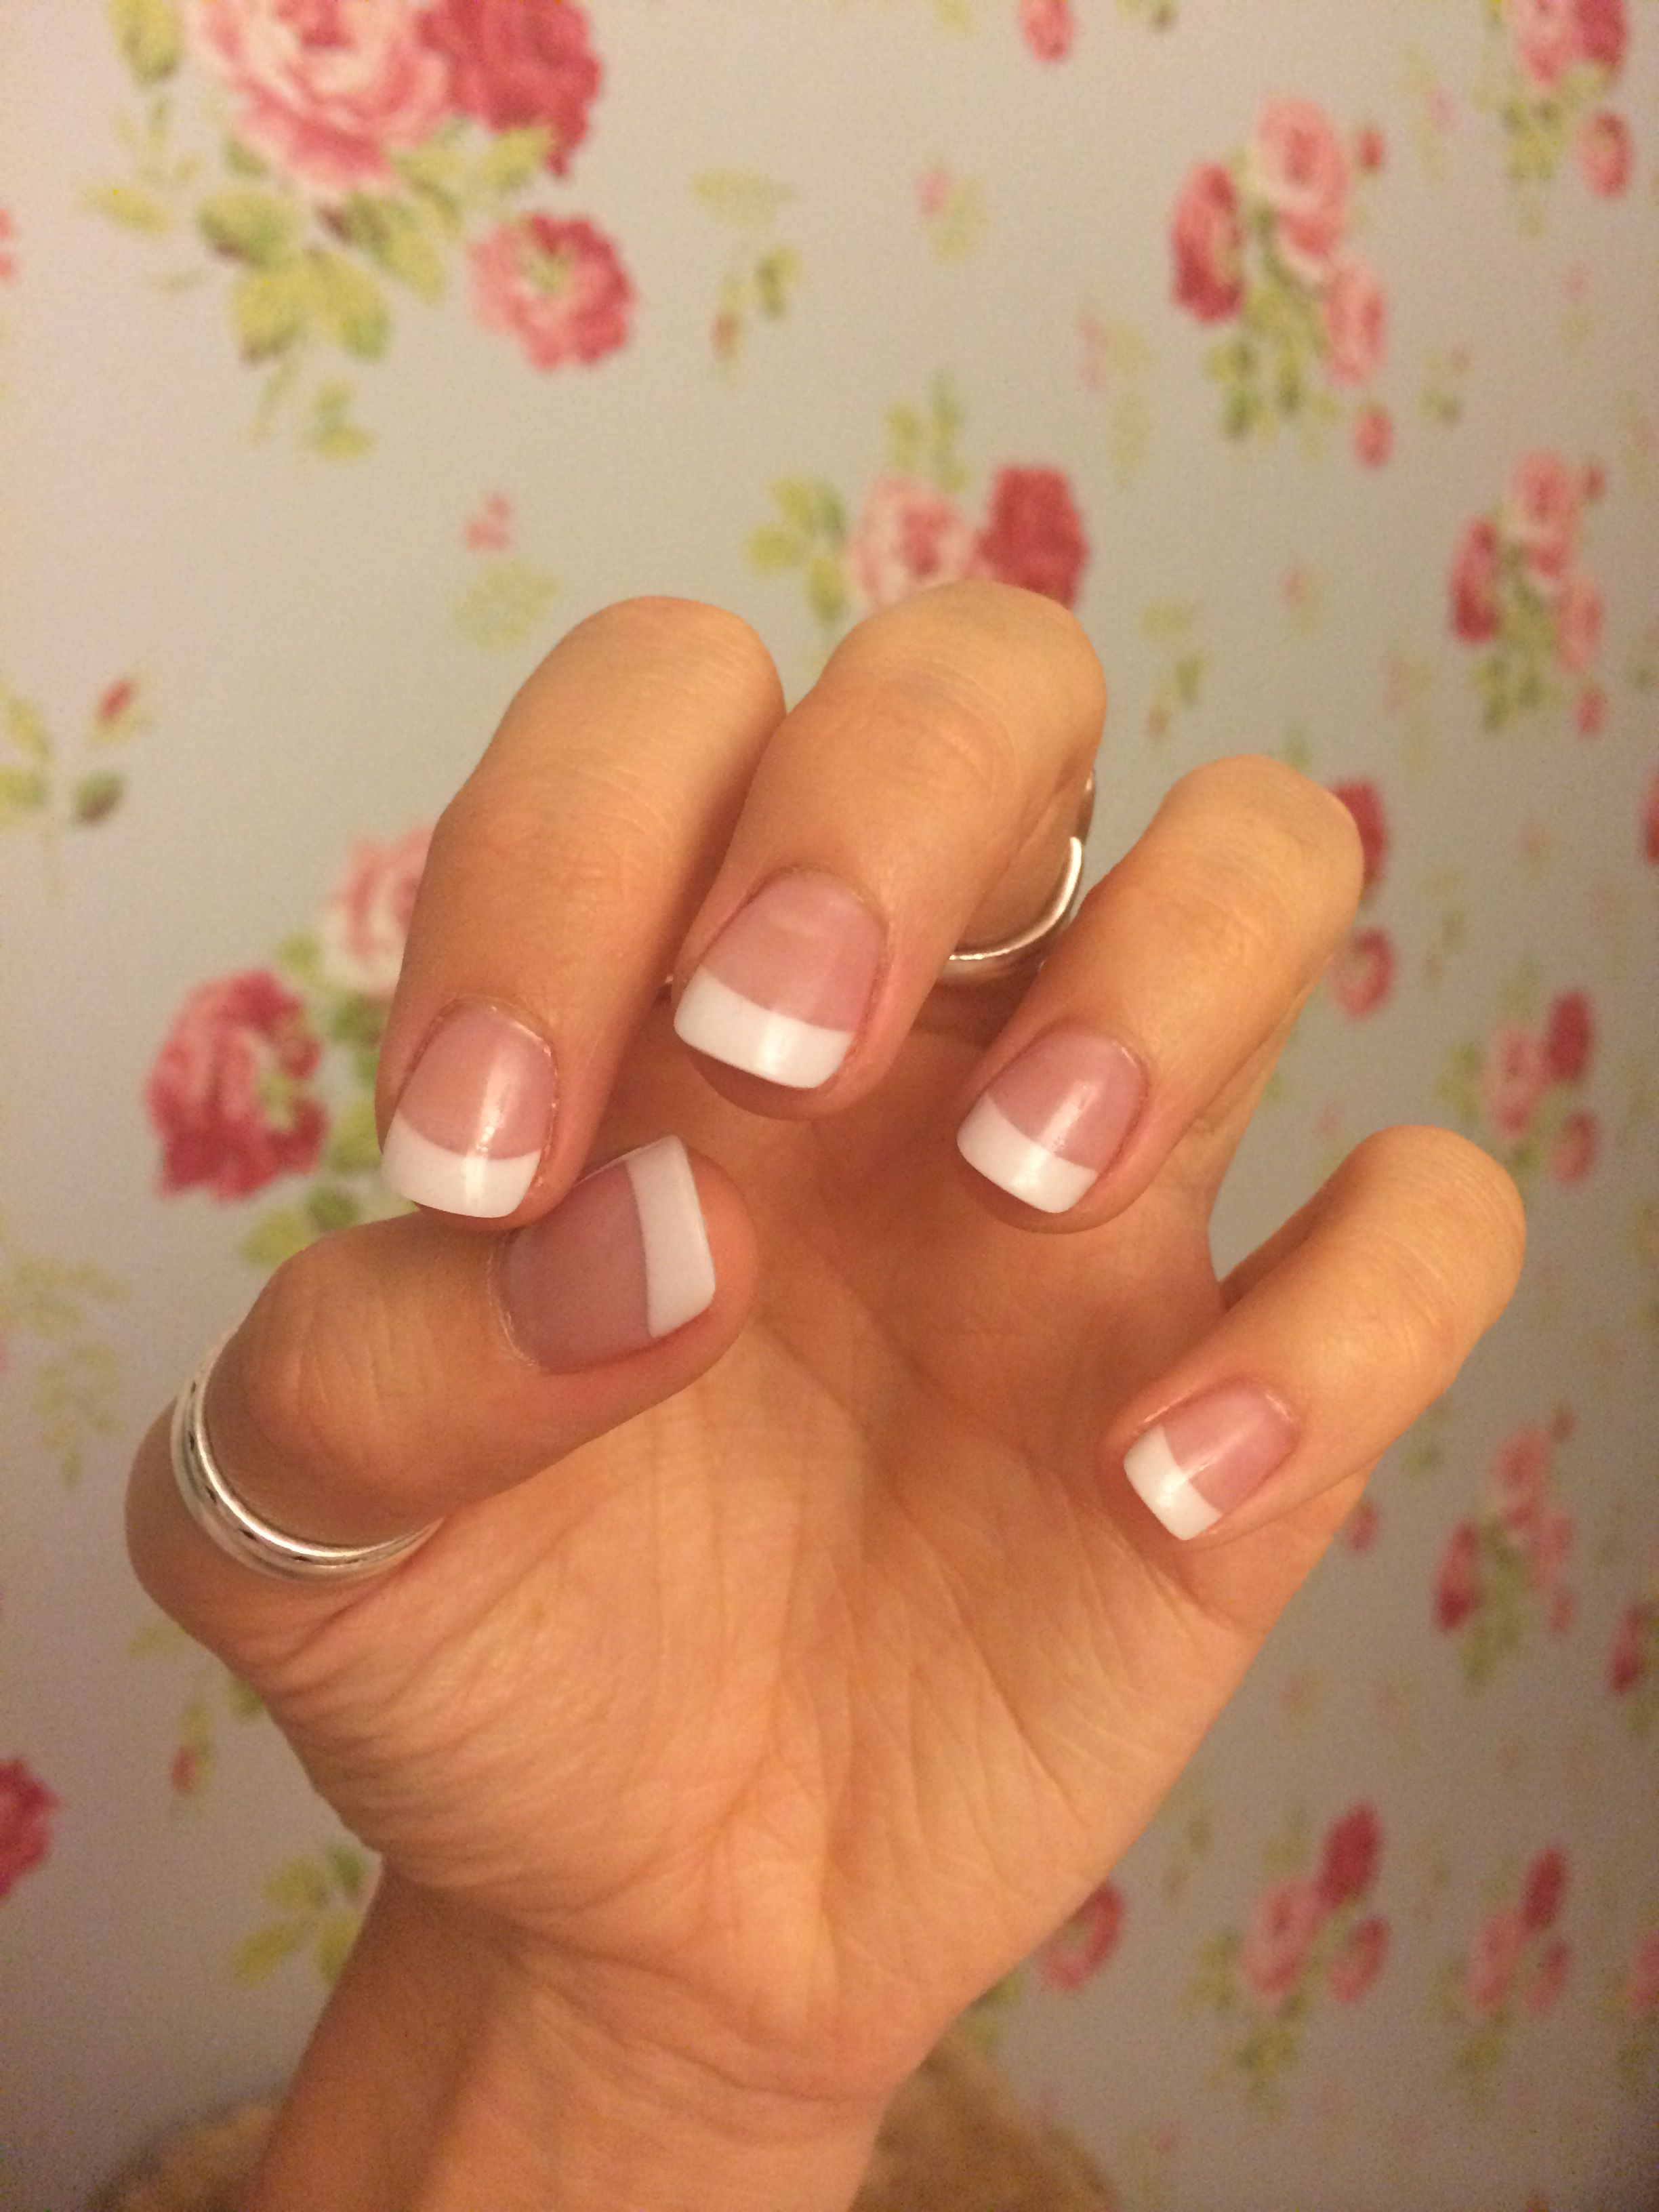 Pink And White Acrylic Nails Natural White Tip I Like This Shape And Length Very Natural Looking P White Acrylic Nails White Tip Acrylic Nails Trendy Nails